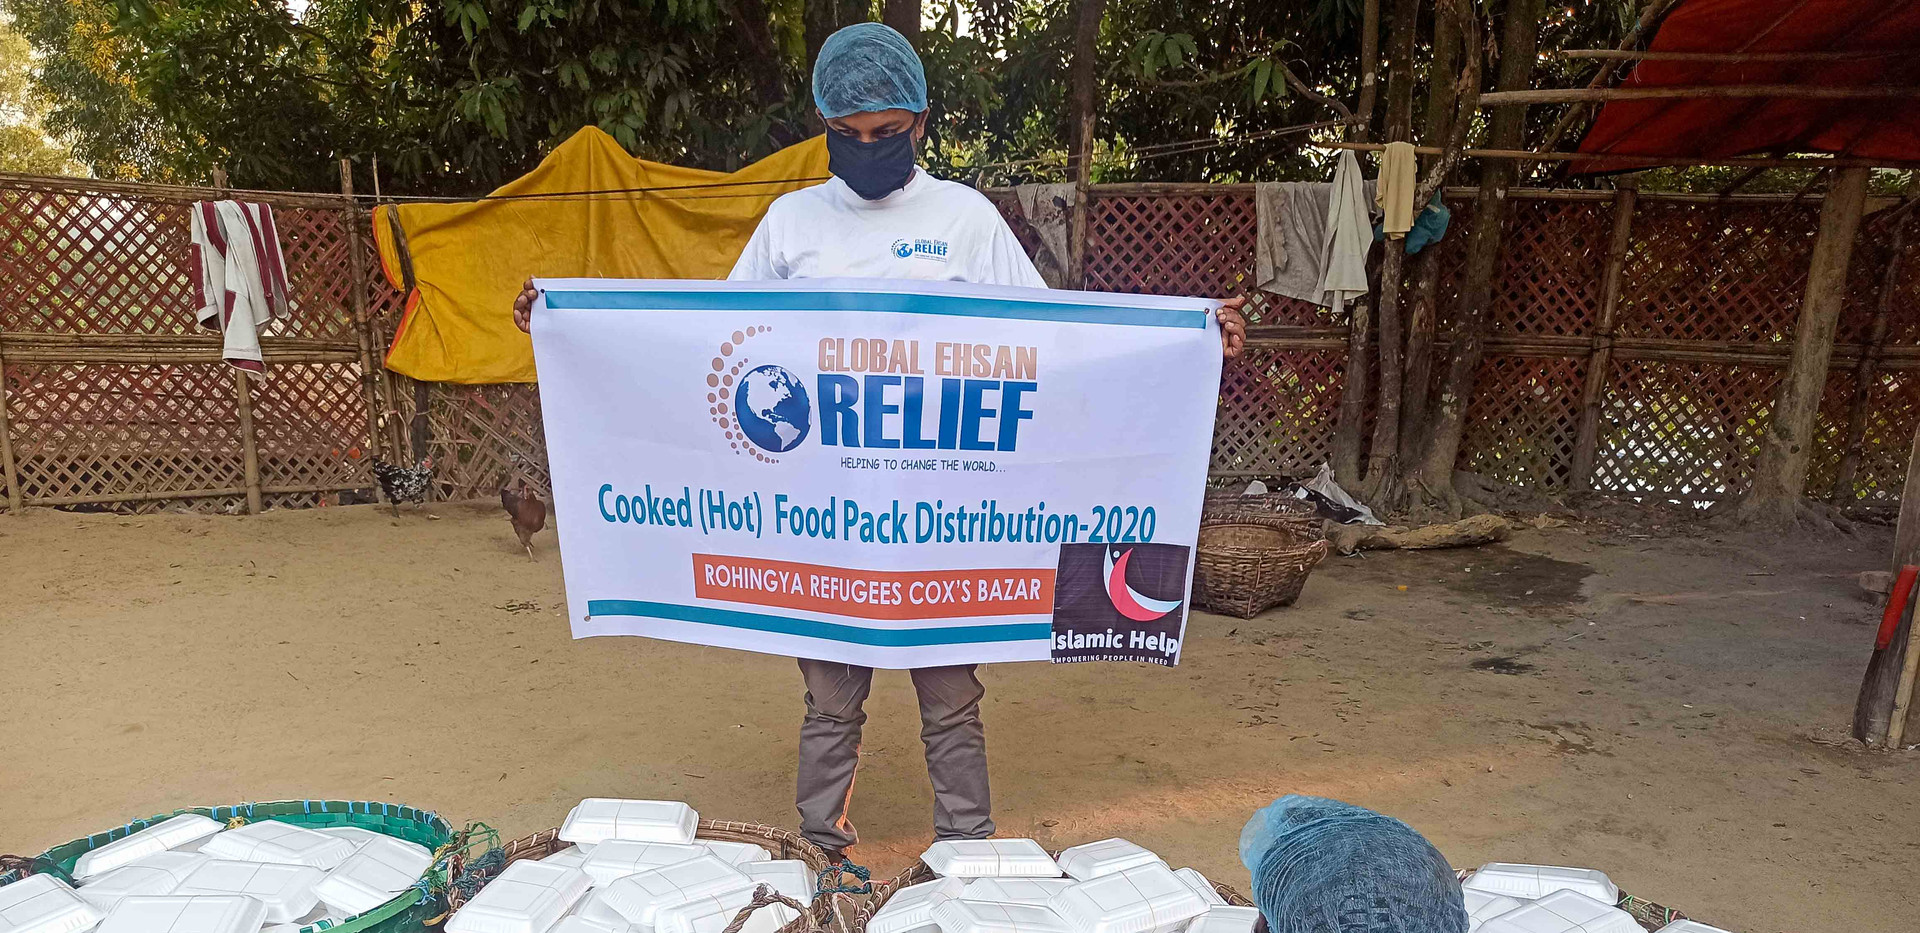 Distribution of Cooked Meals for Rohingya Refugees